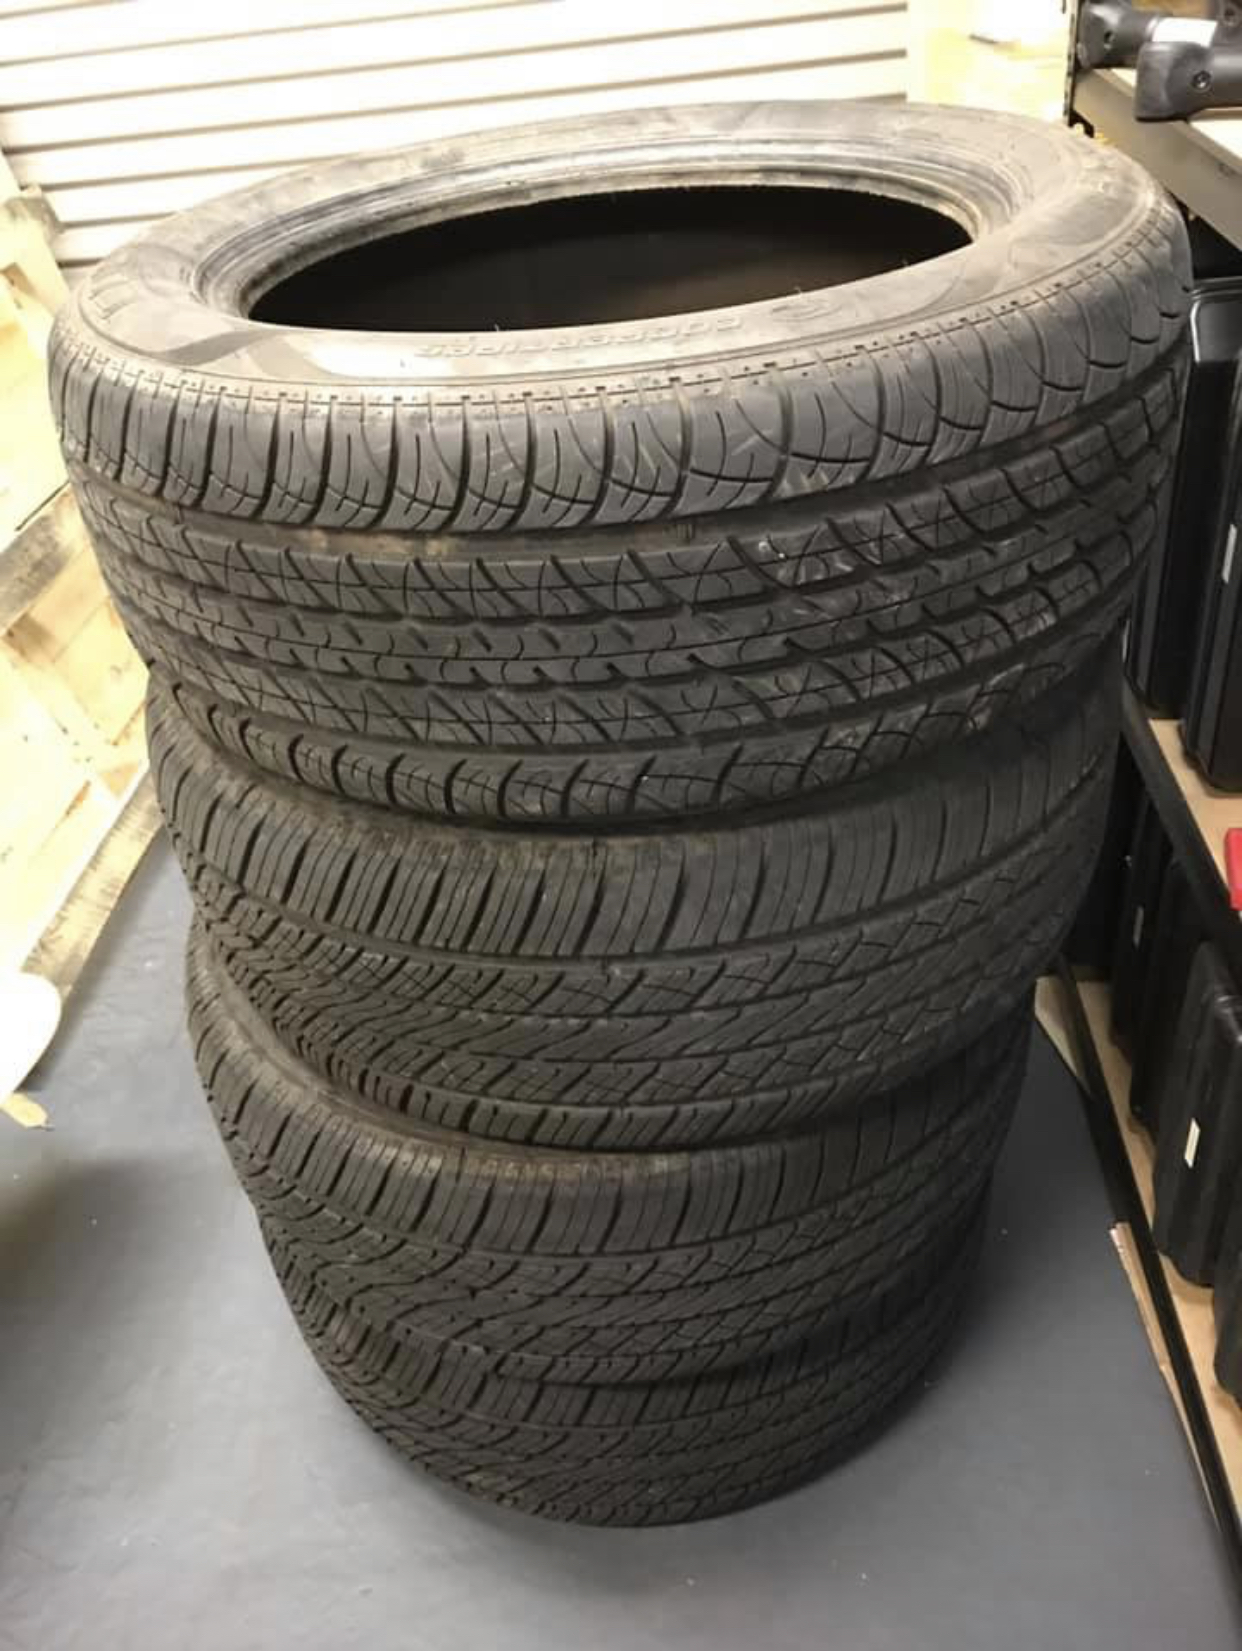 Cooper cs4 touring tyres 235/55r18, used for about 2500km